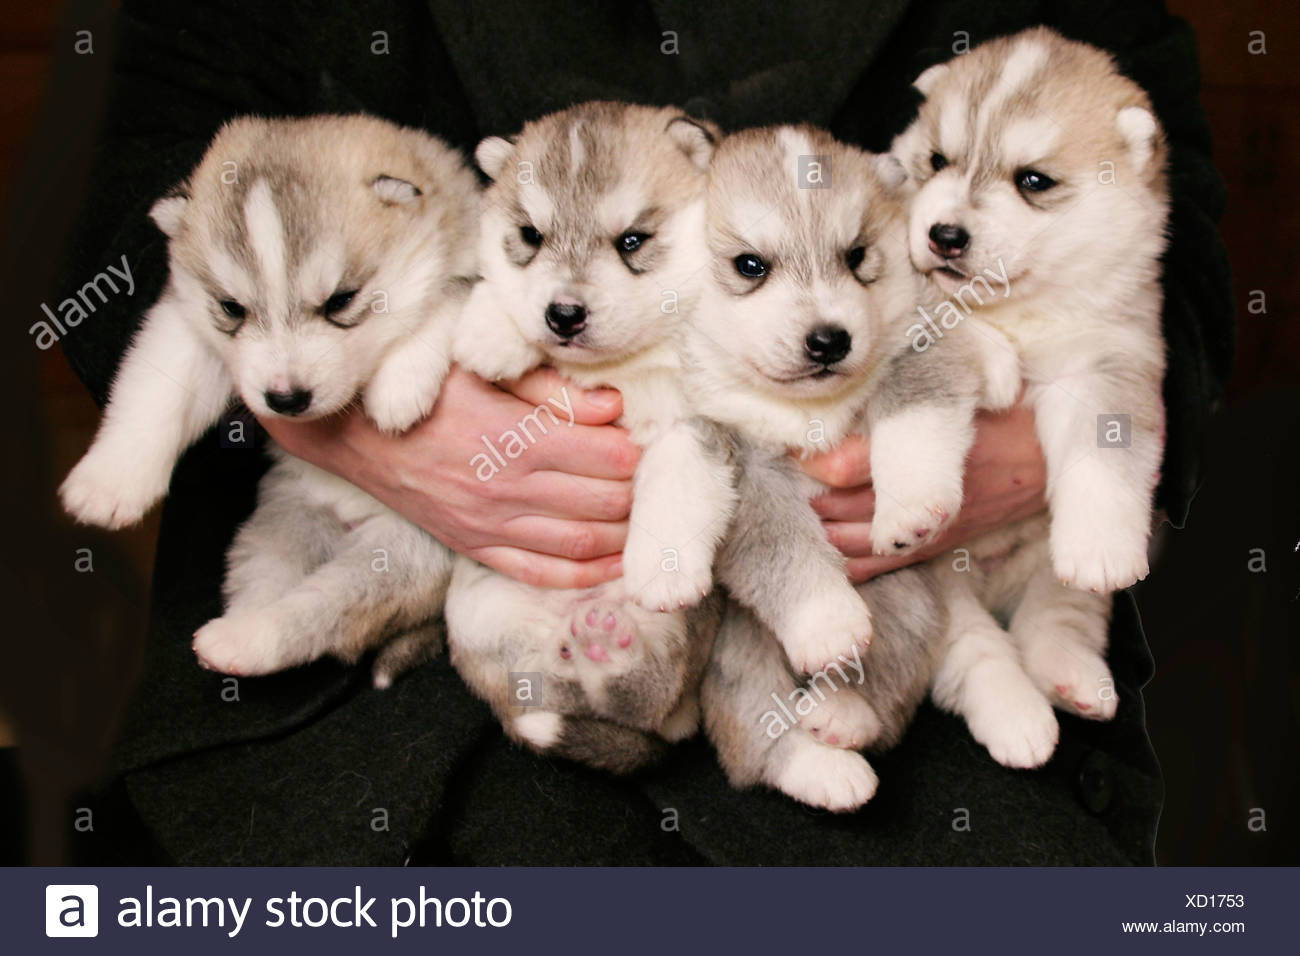 husky puppys stock photo 283383999 alamy